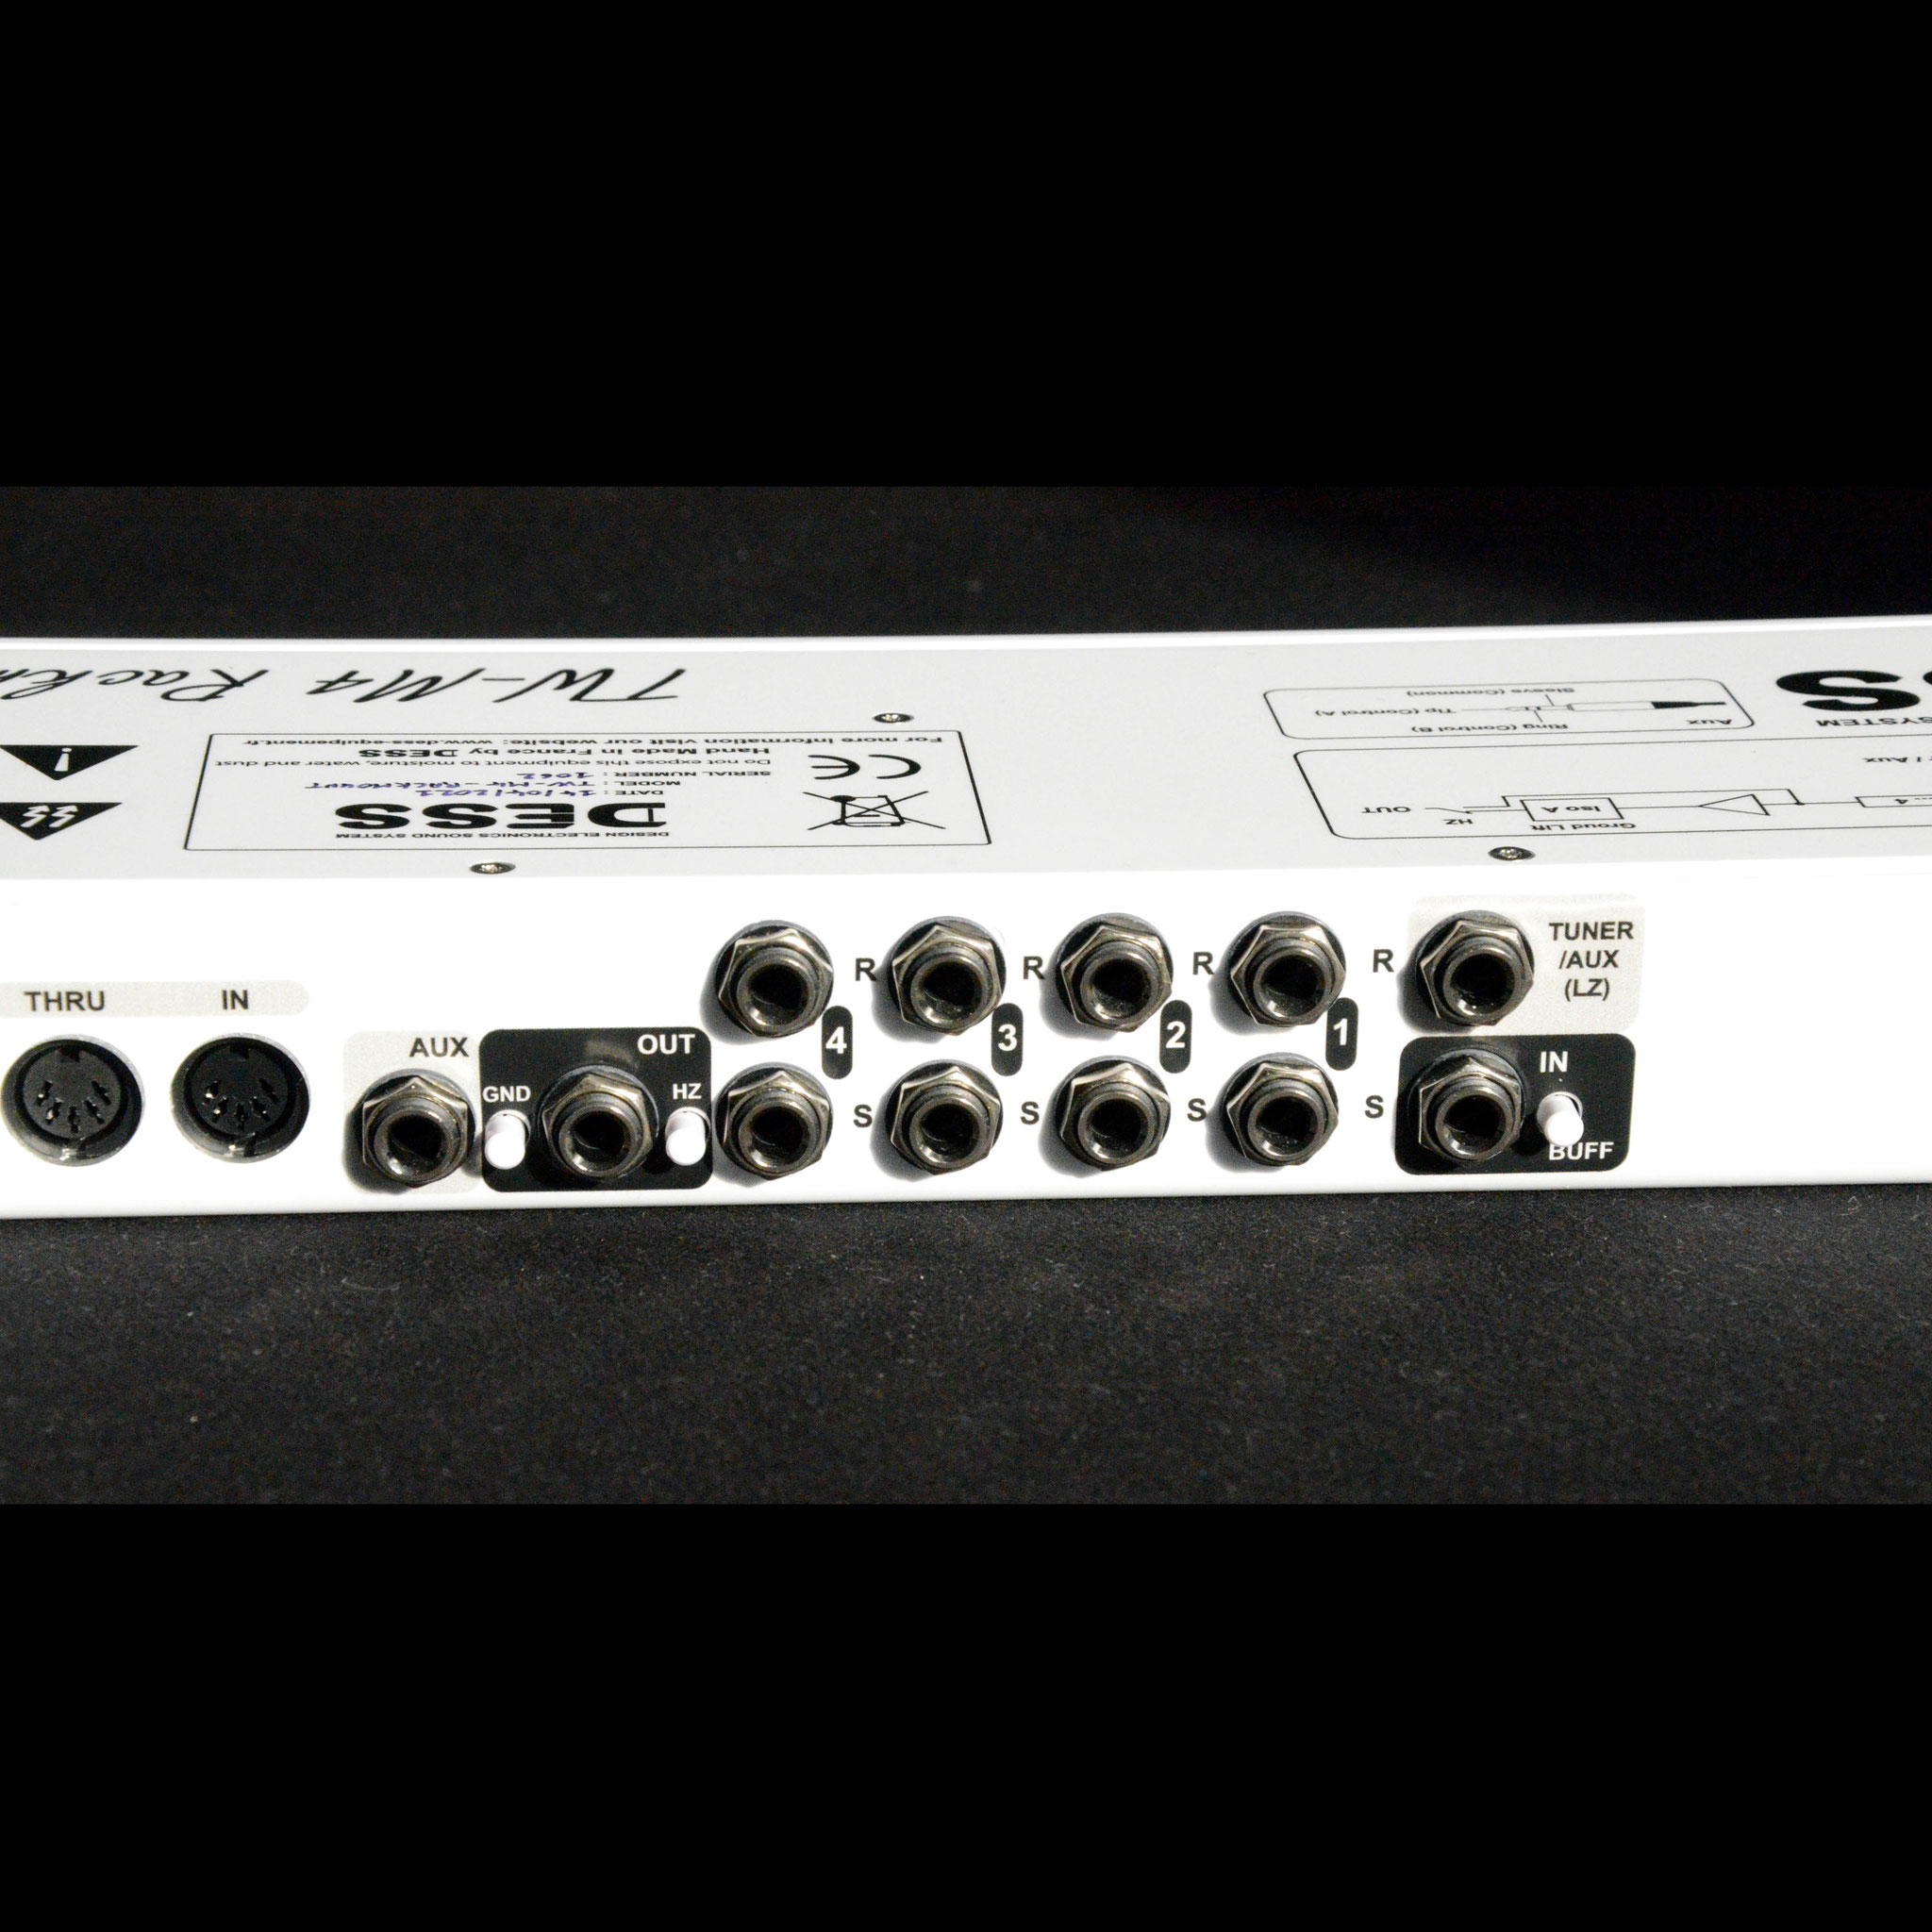 TW-M4 Rackmount, Switcher d'effet 4 Canaux, guitare, basse, Midi, Switching System, DESS